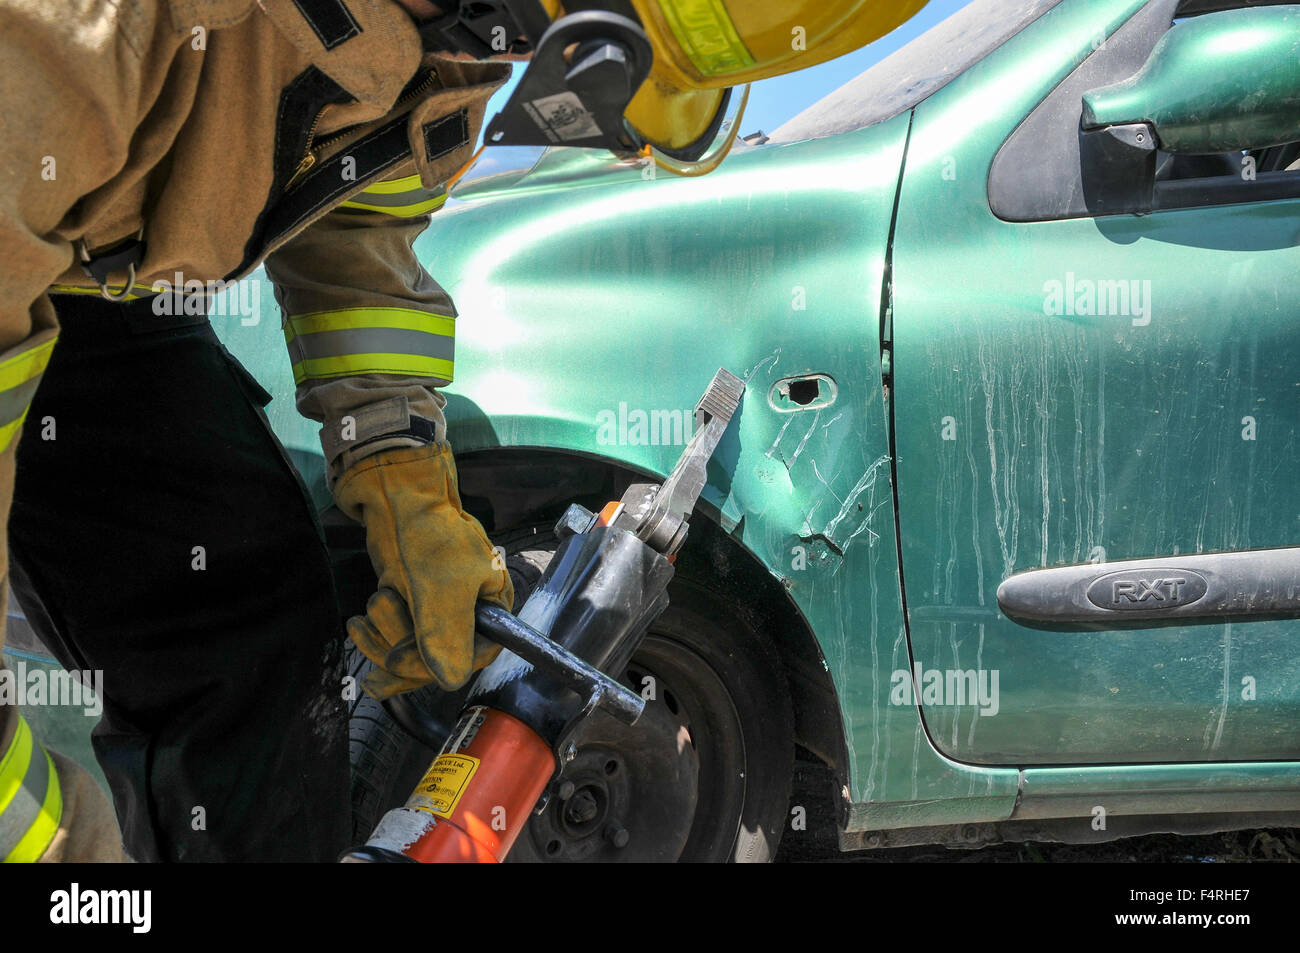 Firefighters use power tools to rescue trapped passengers from a car - Stock Image